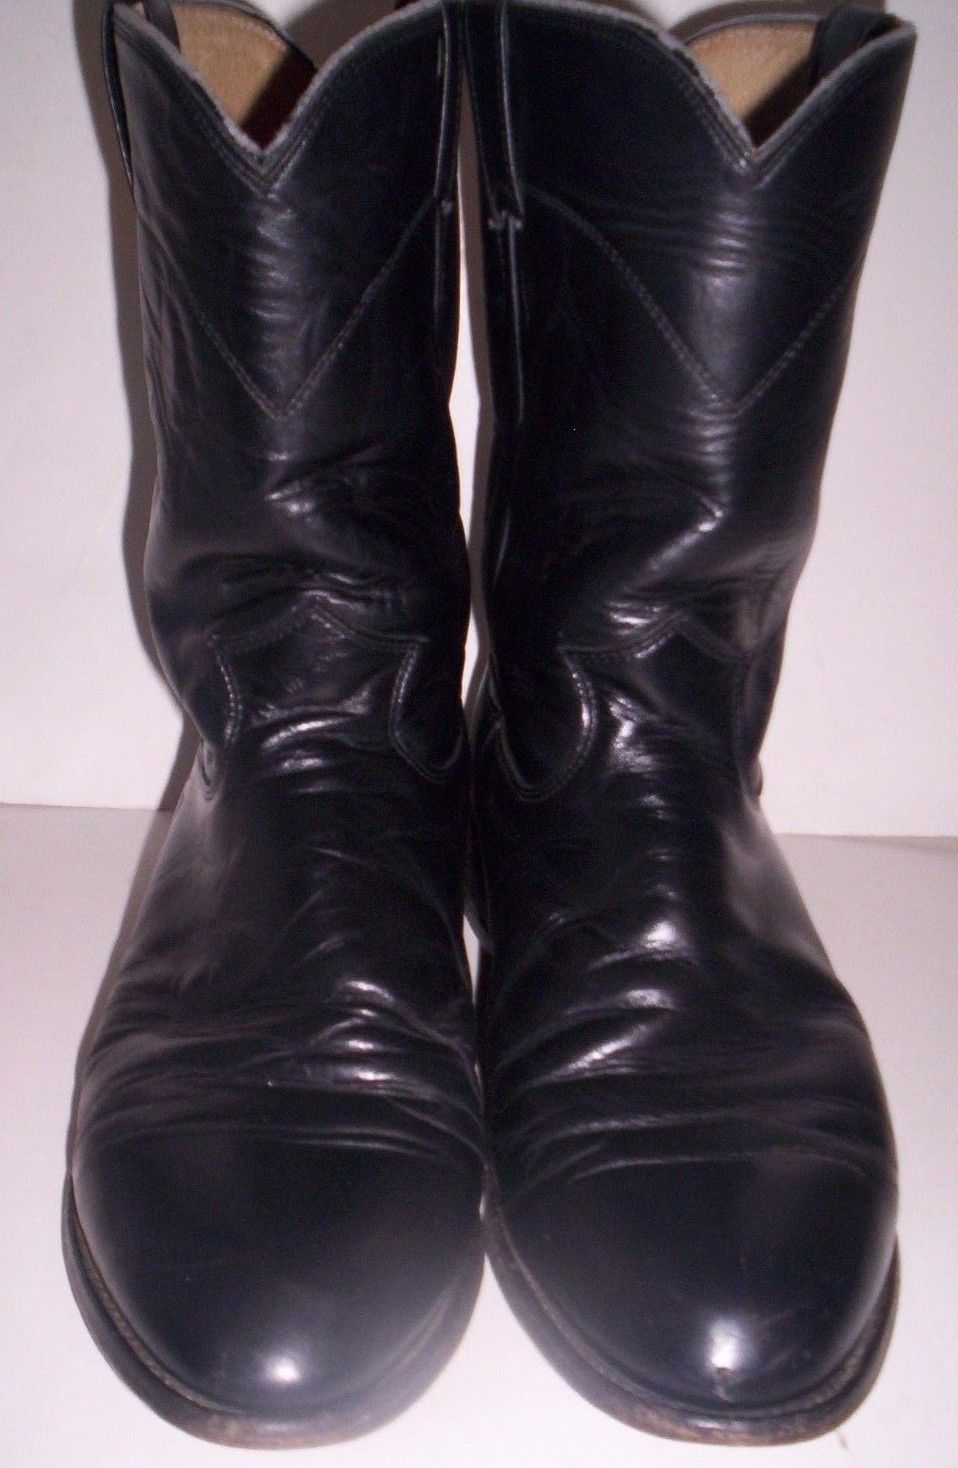 809a523bf53 Men's Justin Jackson Roper Leather Boots Size 9 1/2 EE Black # 3133 ...